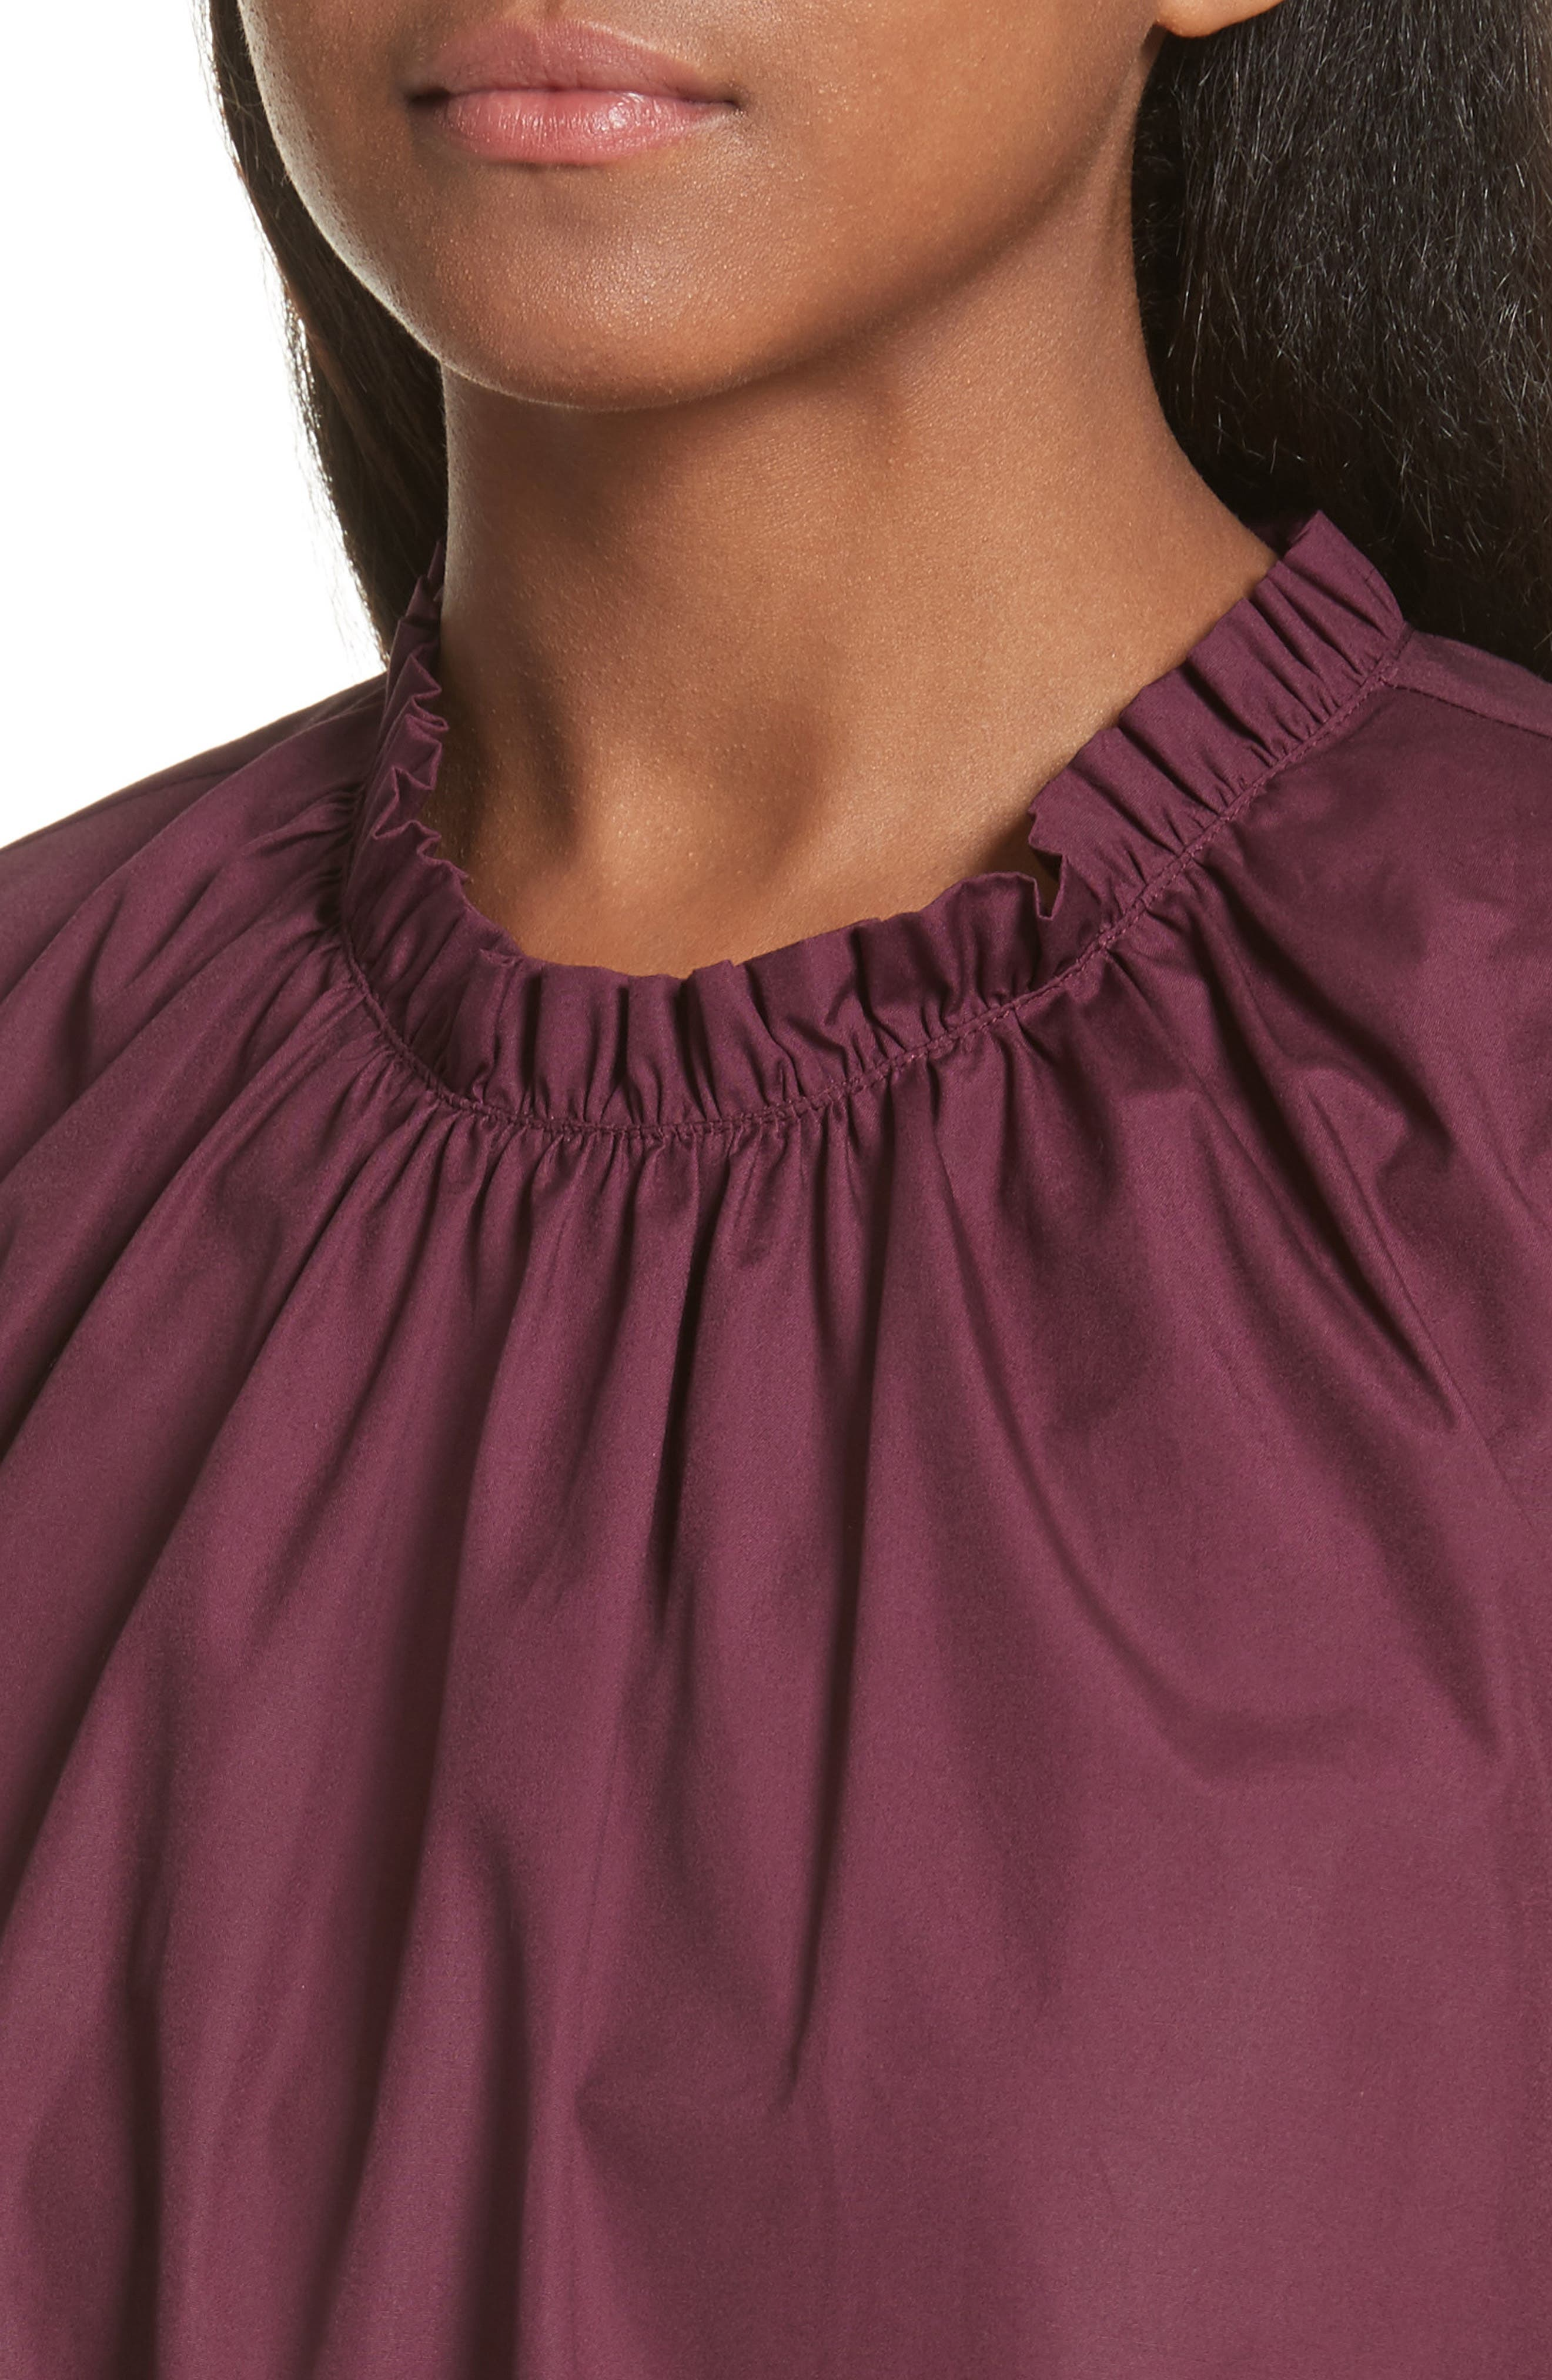 Ezmay Tiered Shift Dress,                             Alternate thumbnail 4, color,                             930